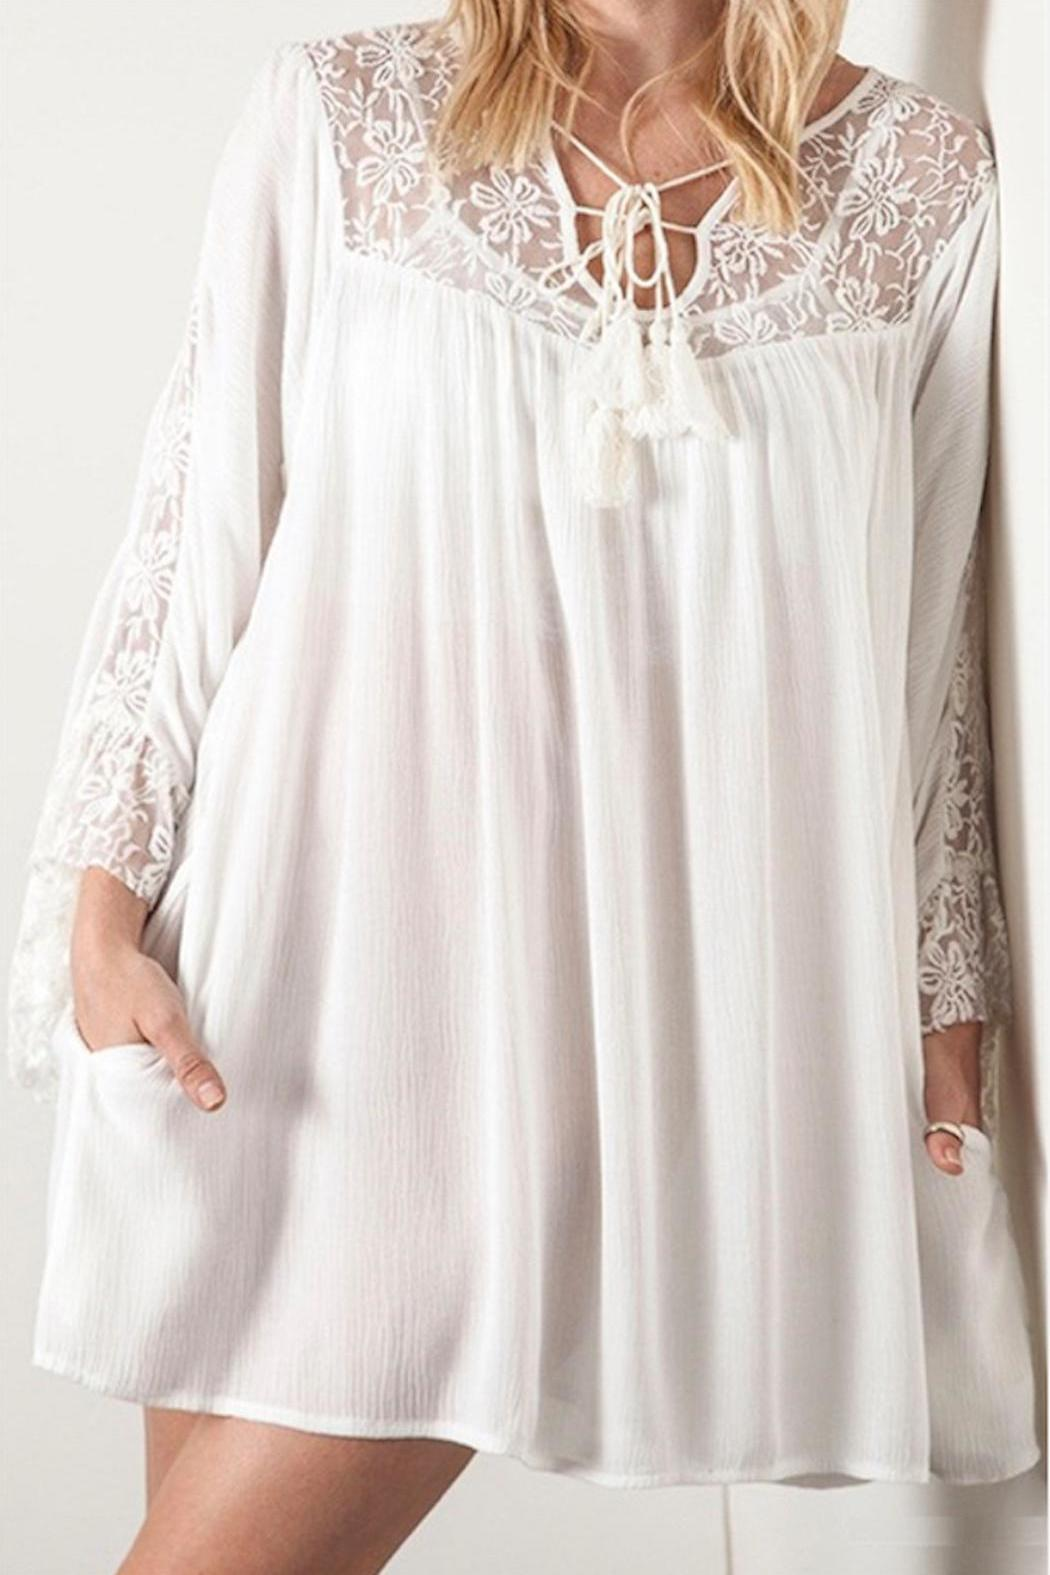 People Outfitter Kimmi Lace Dress - Front Full Image